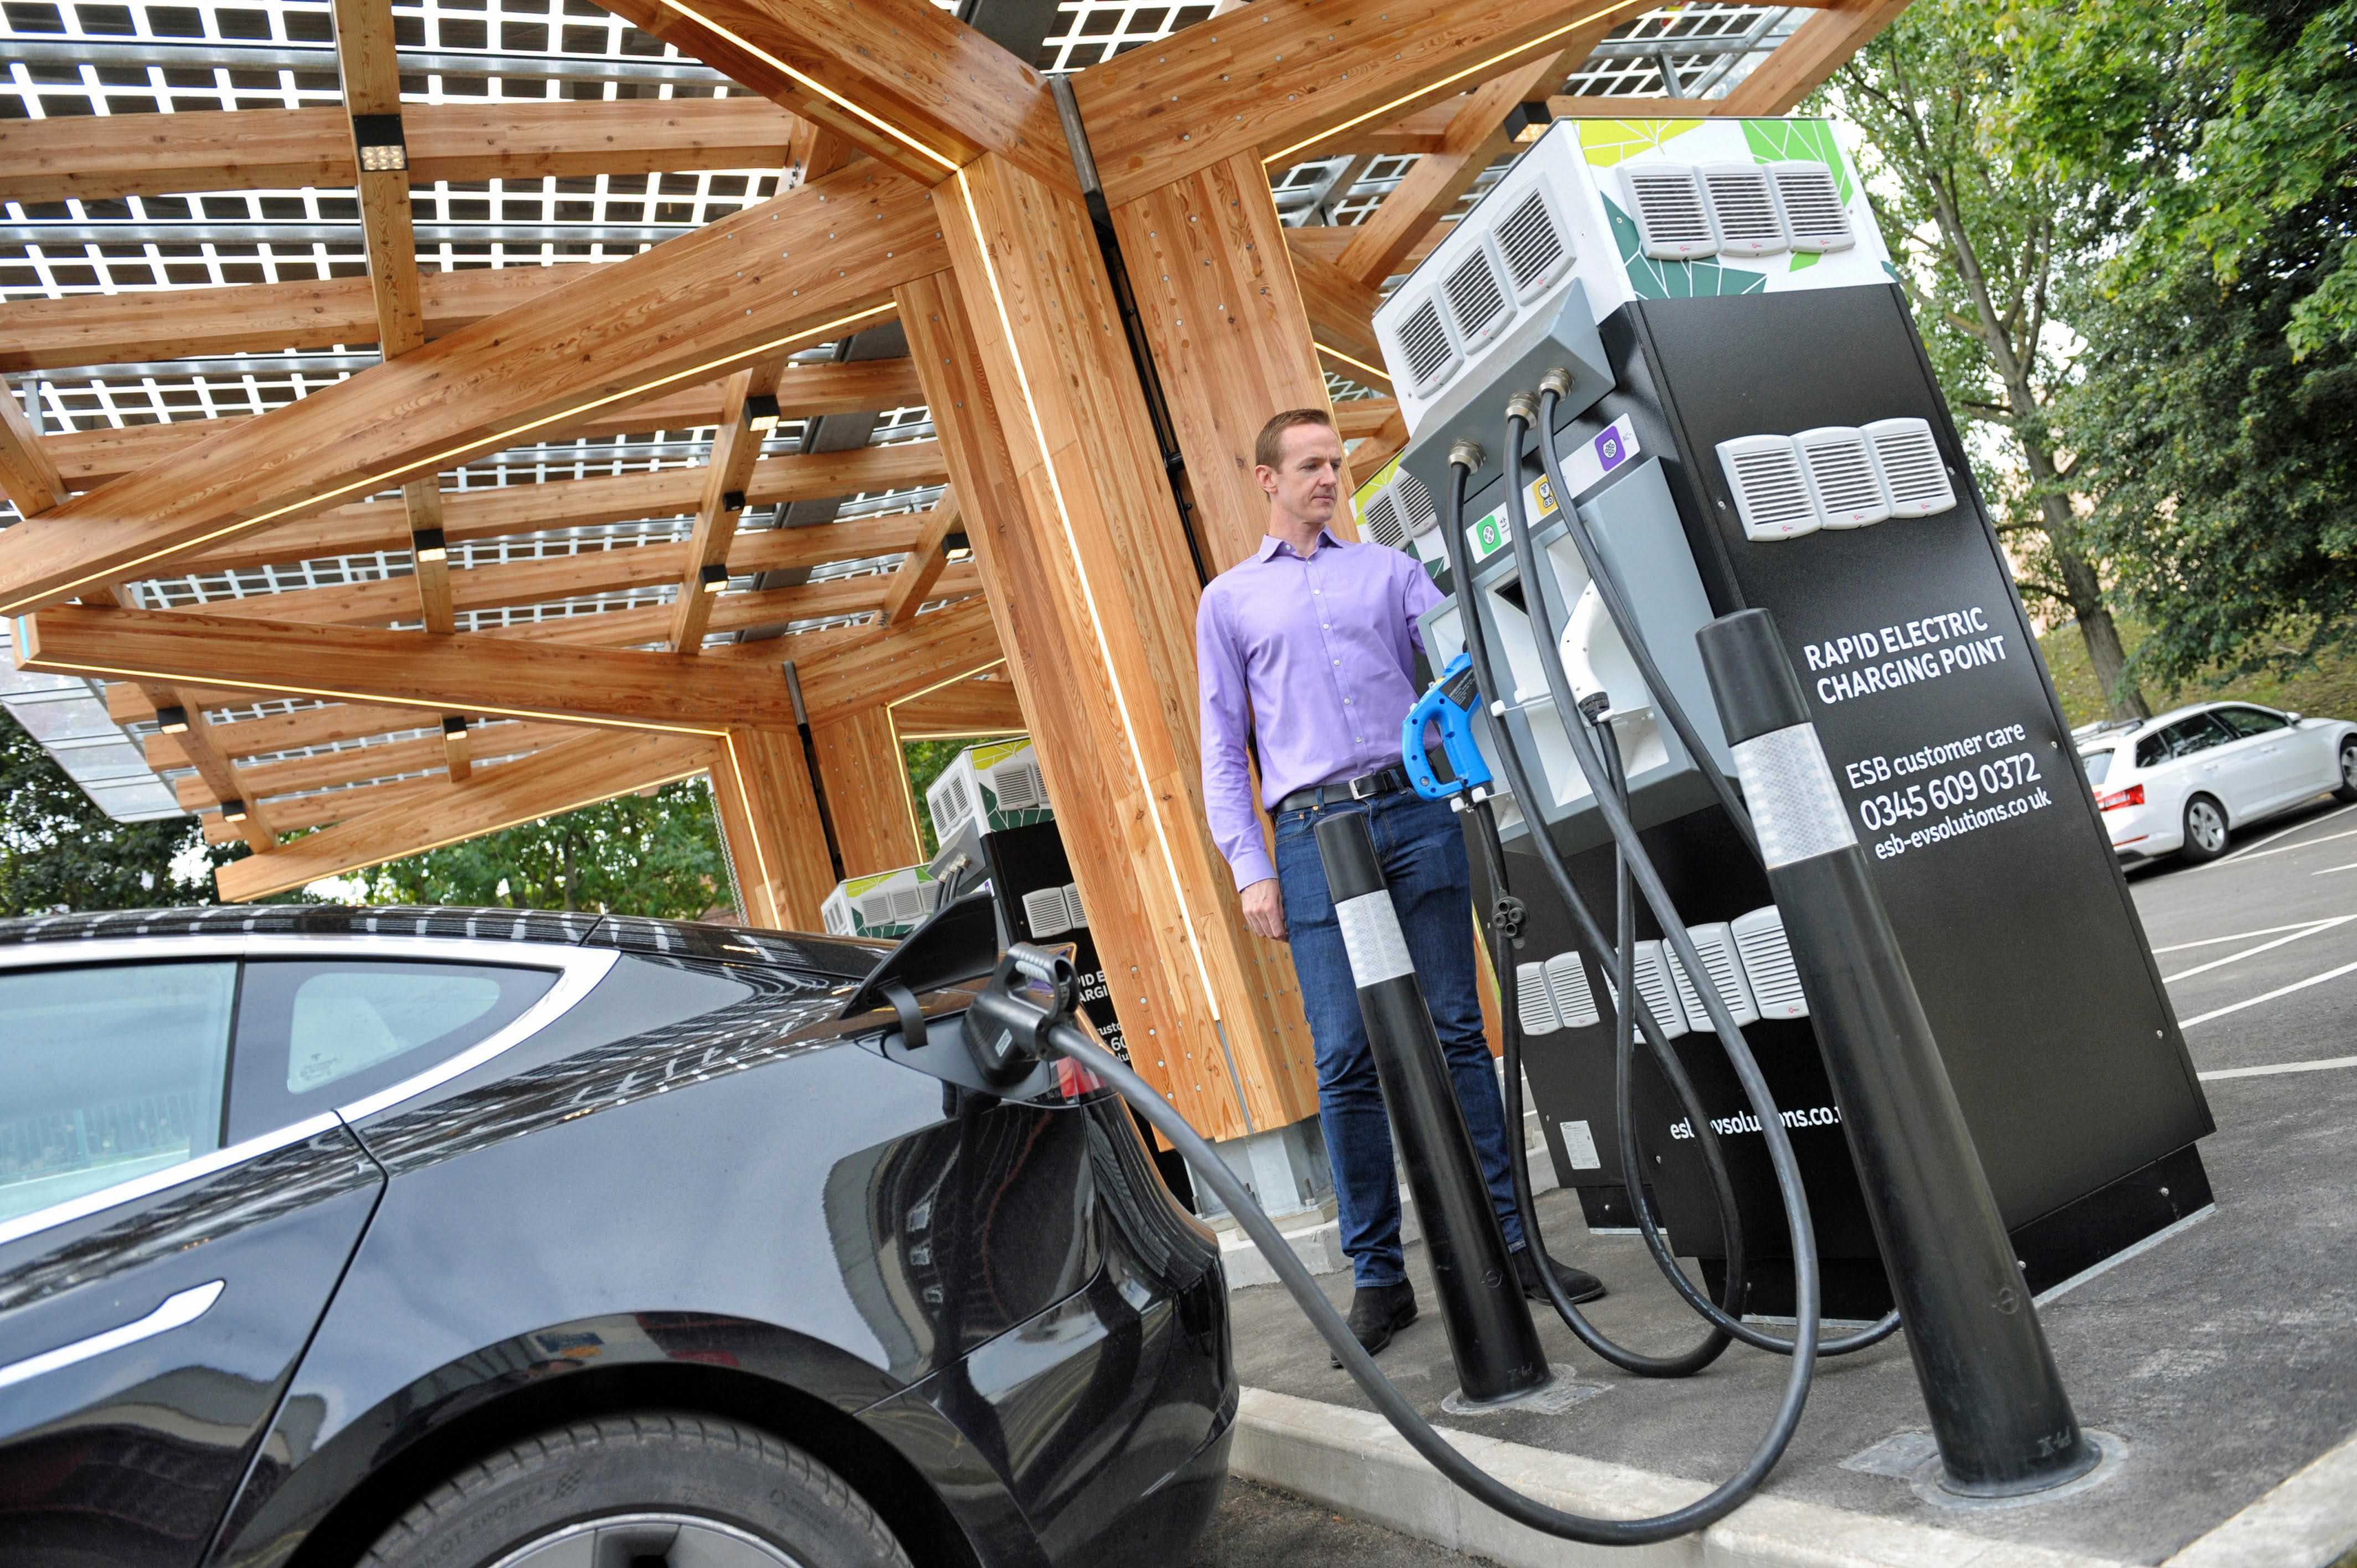 A man demonstrates K:Port in use by charging a Tesla electric car under the canopy